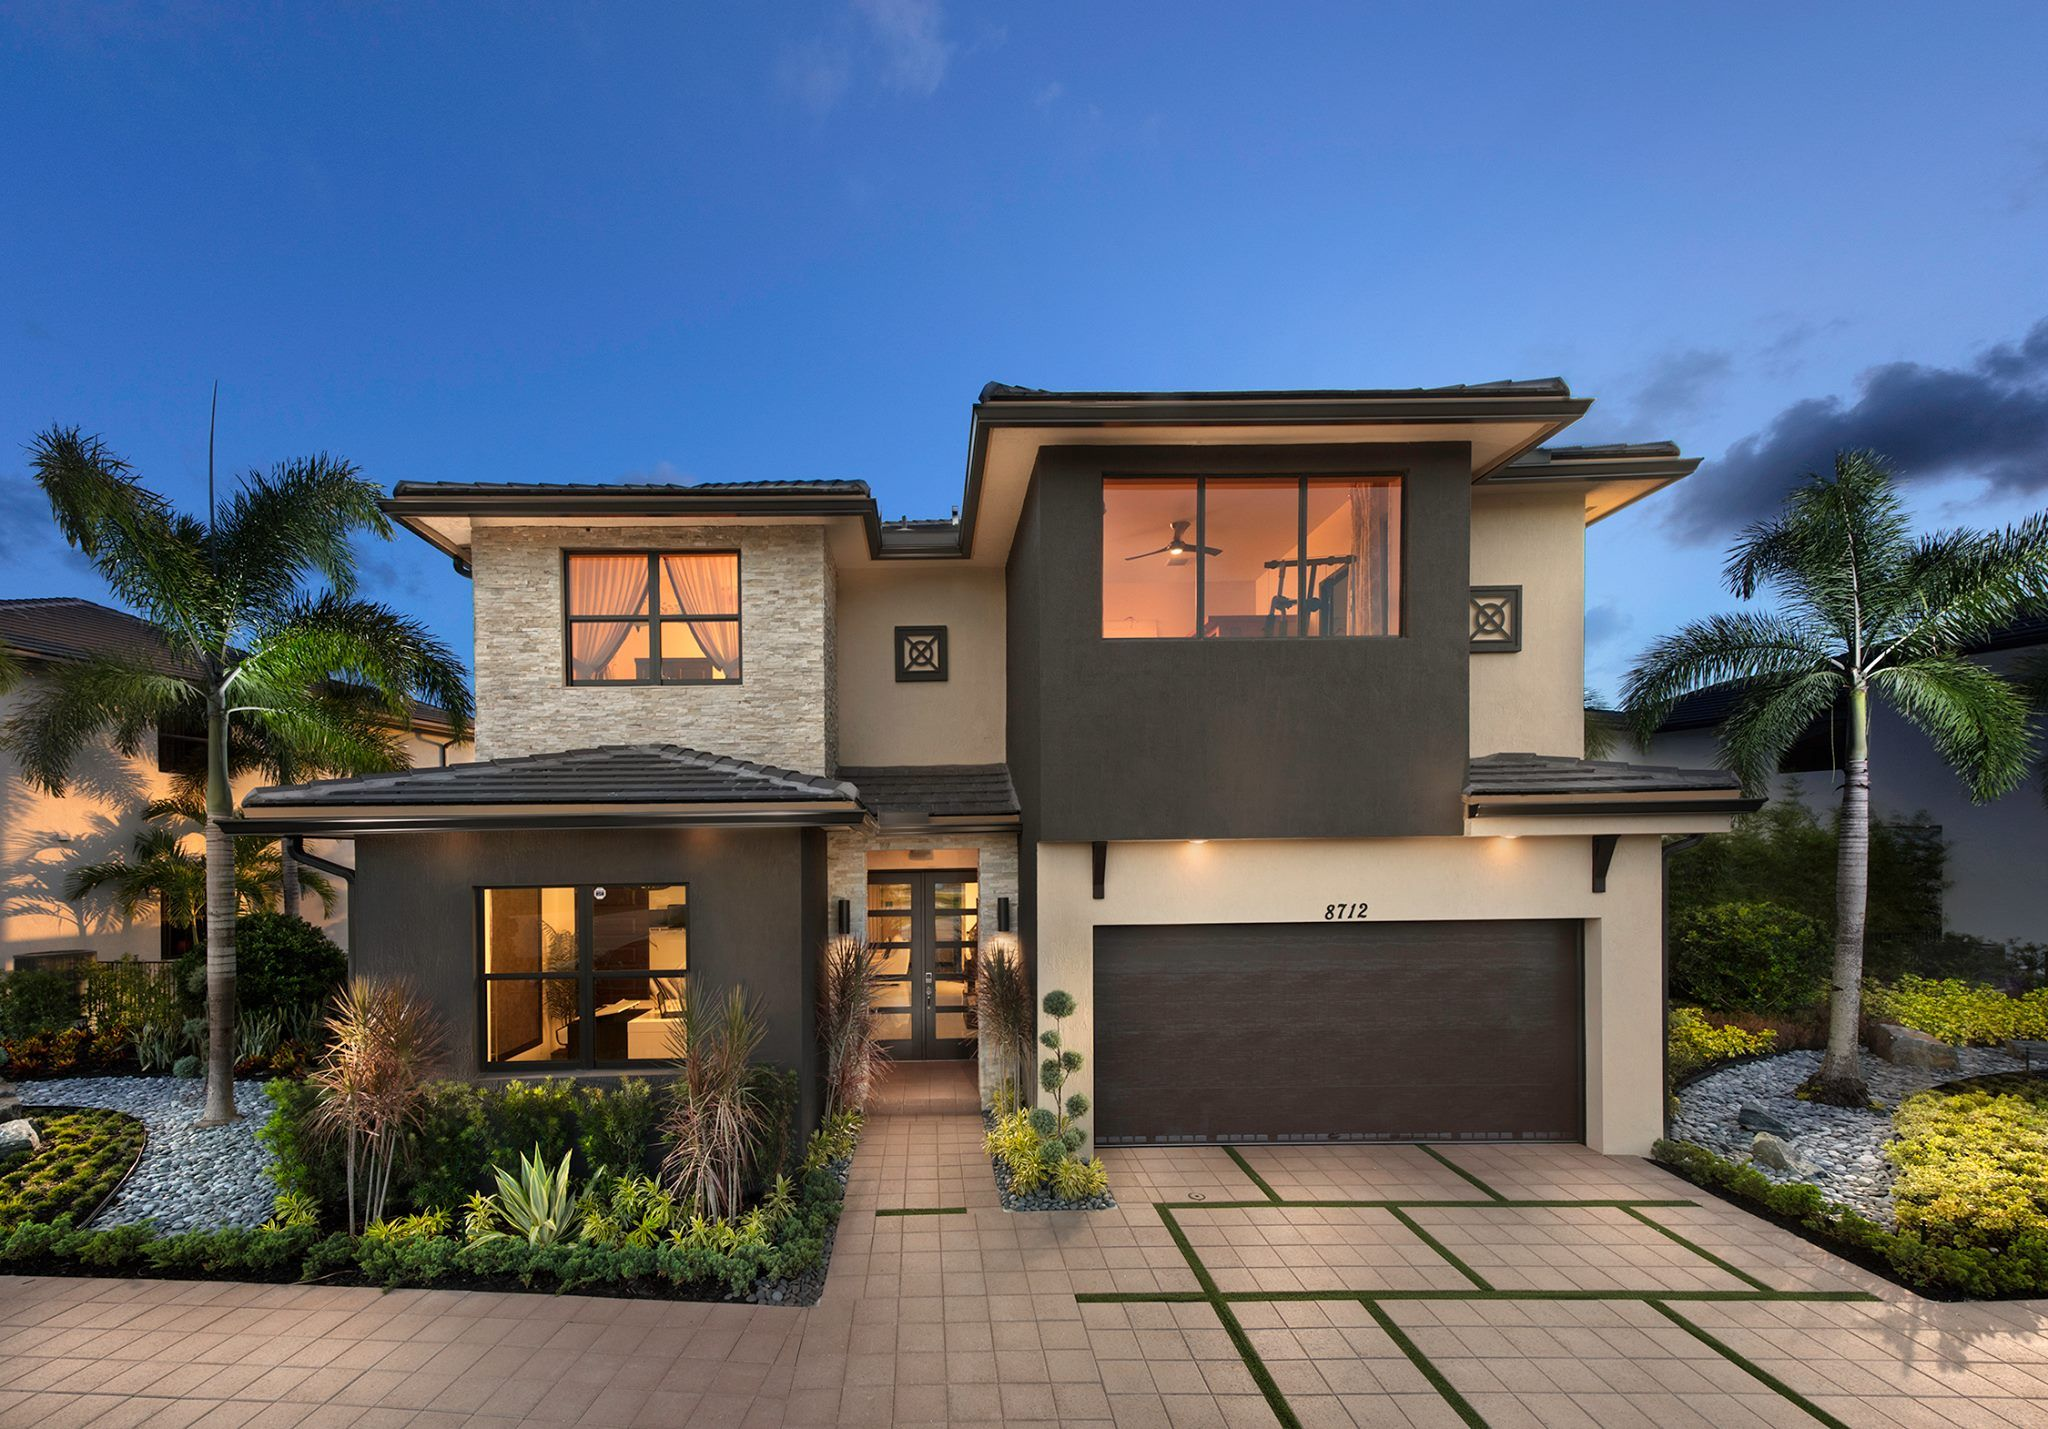 How Would You Describe This Home From Miami Fl New House Plans House Plans Modern House Design